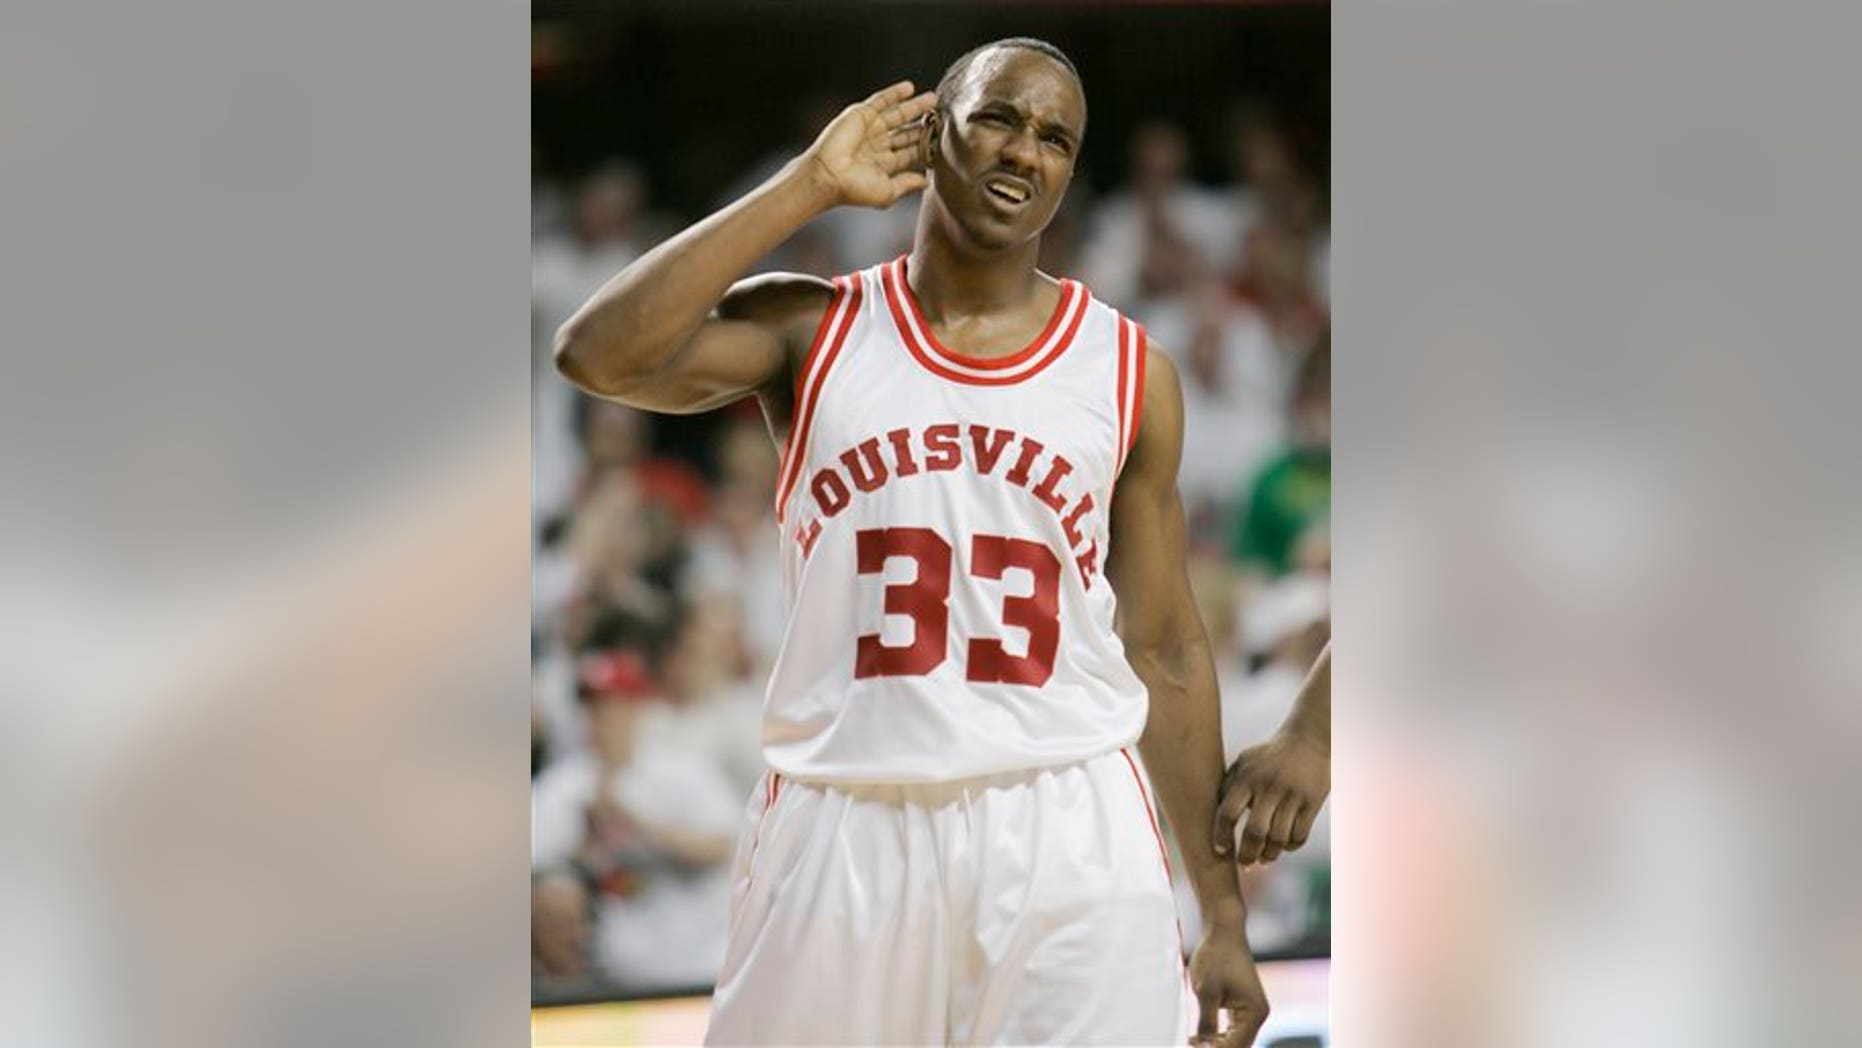 2009 file photo of Andre McGee, who played for Louisville before becoming a staffer. (AP Photo/Ed Reinke)